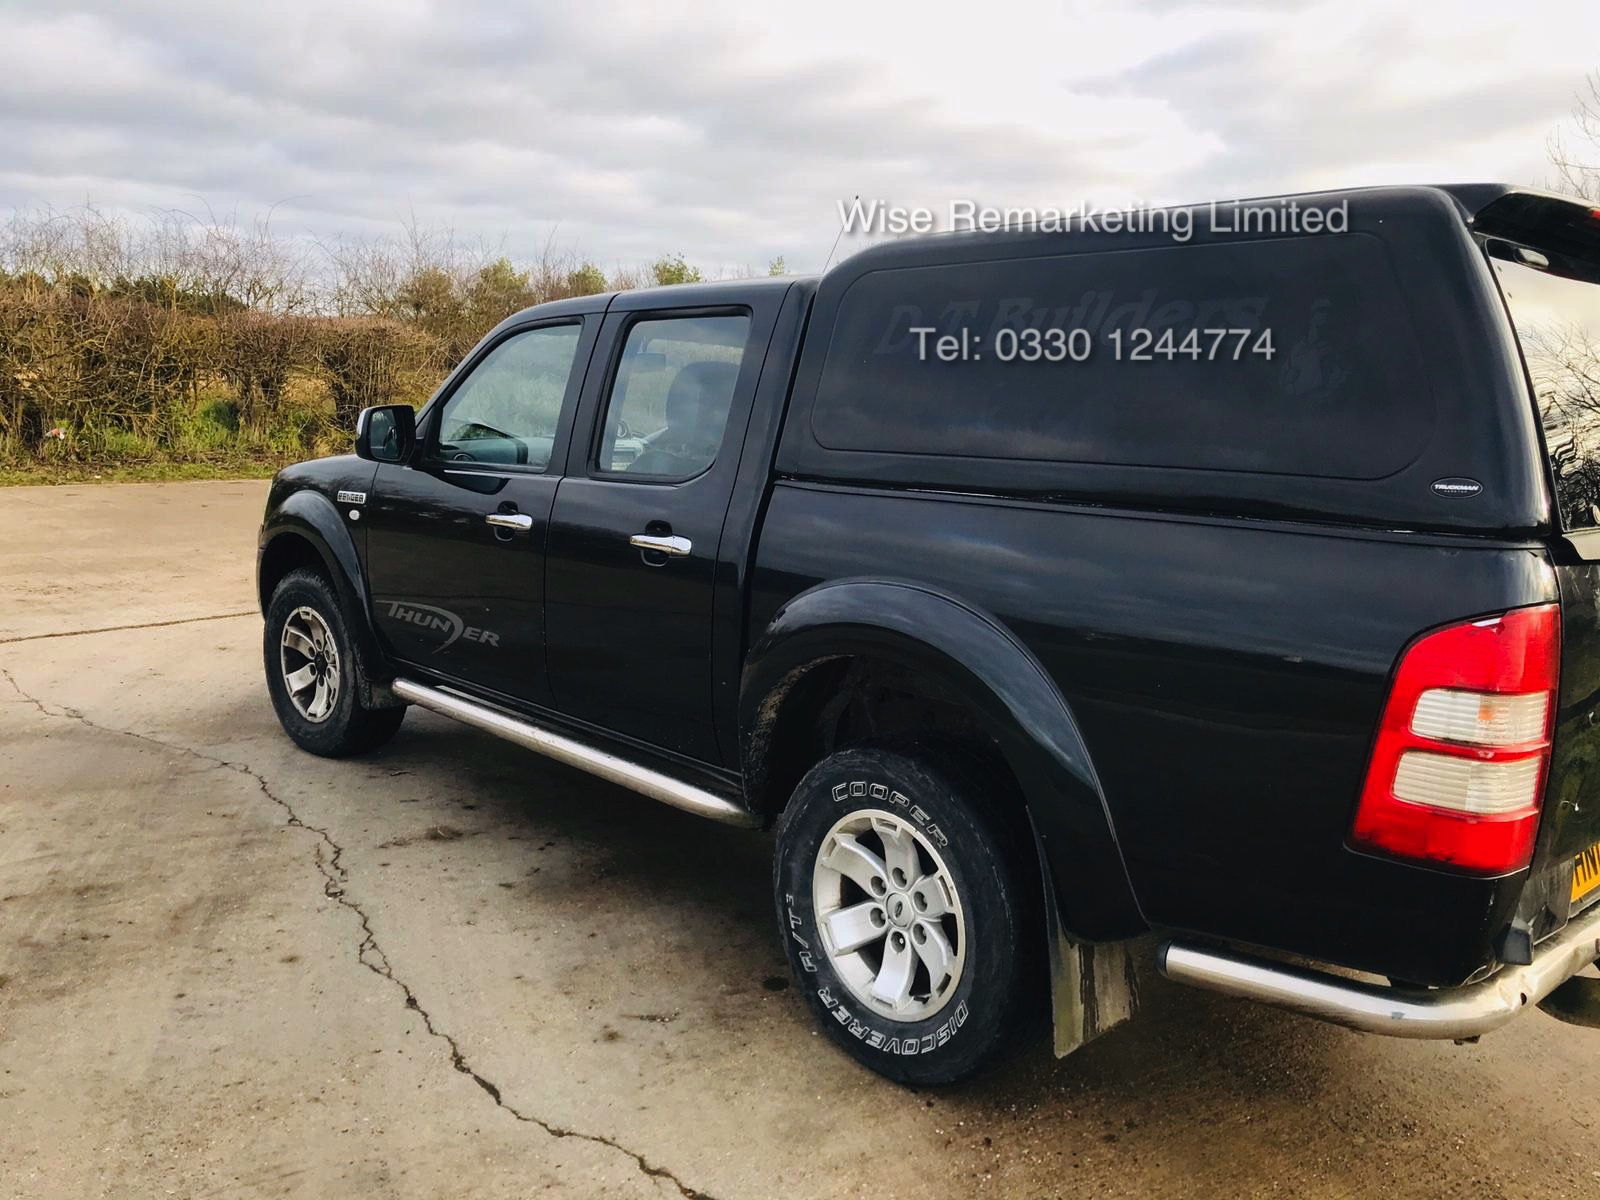 (RESERVE MET) Ford Ranger Thunder 2.5 Double Cab Pick Up - 2009 09 Reg - 4x4 - Service History - Image 2 of 17